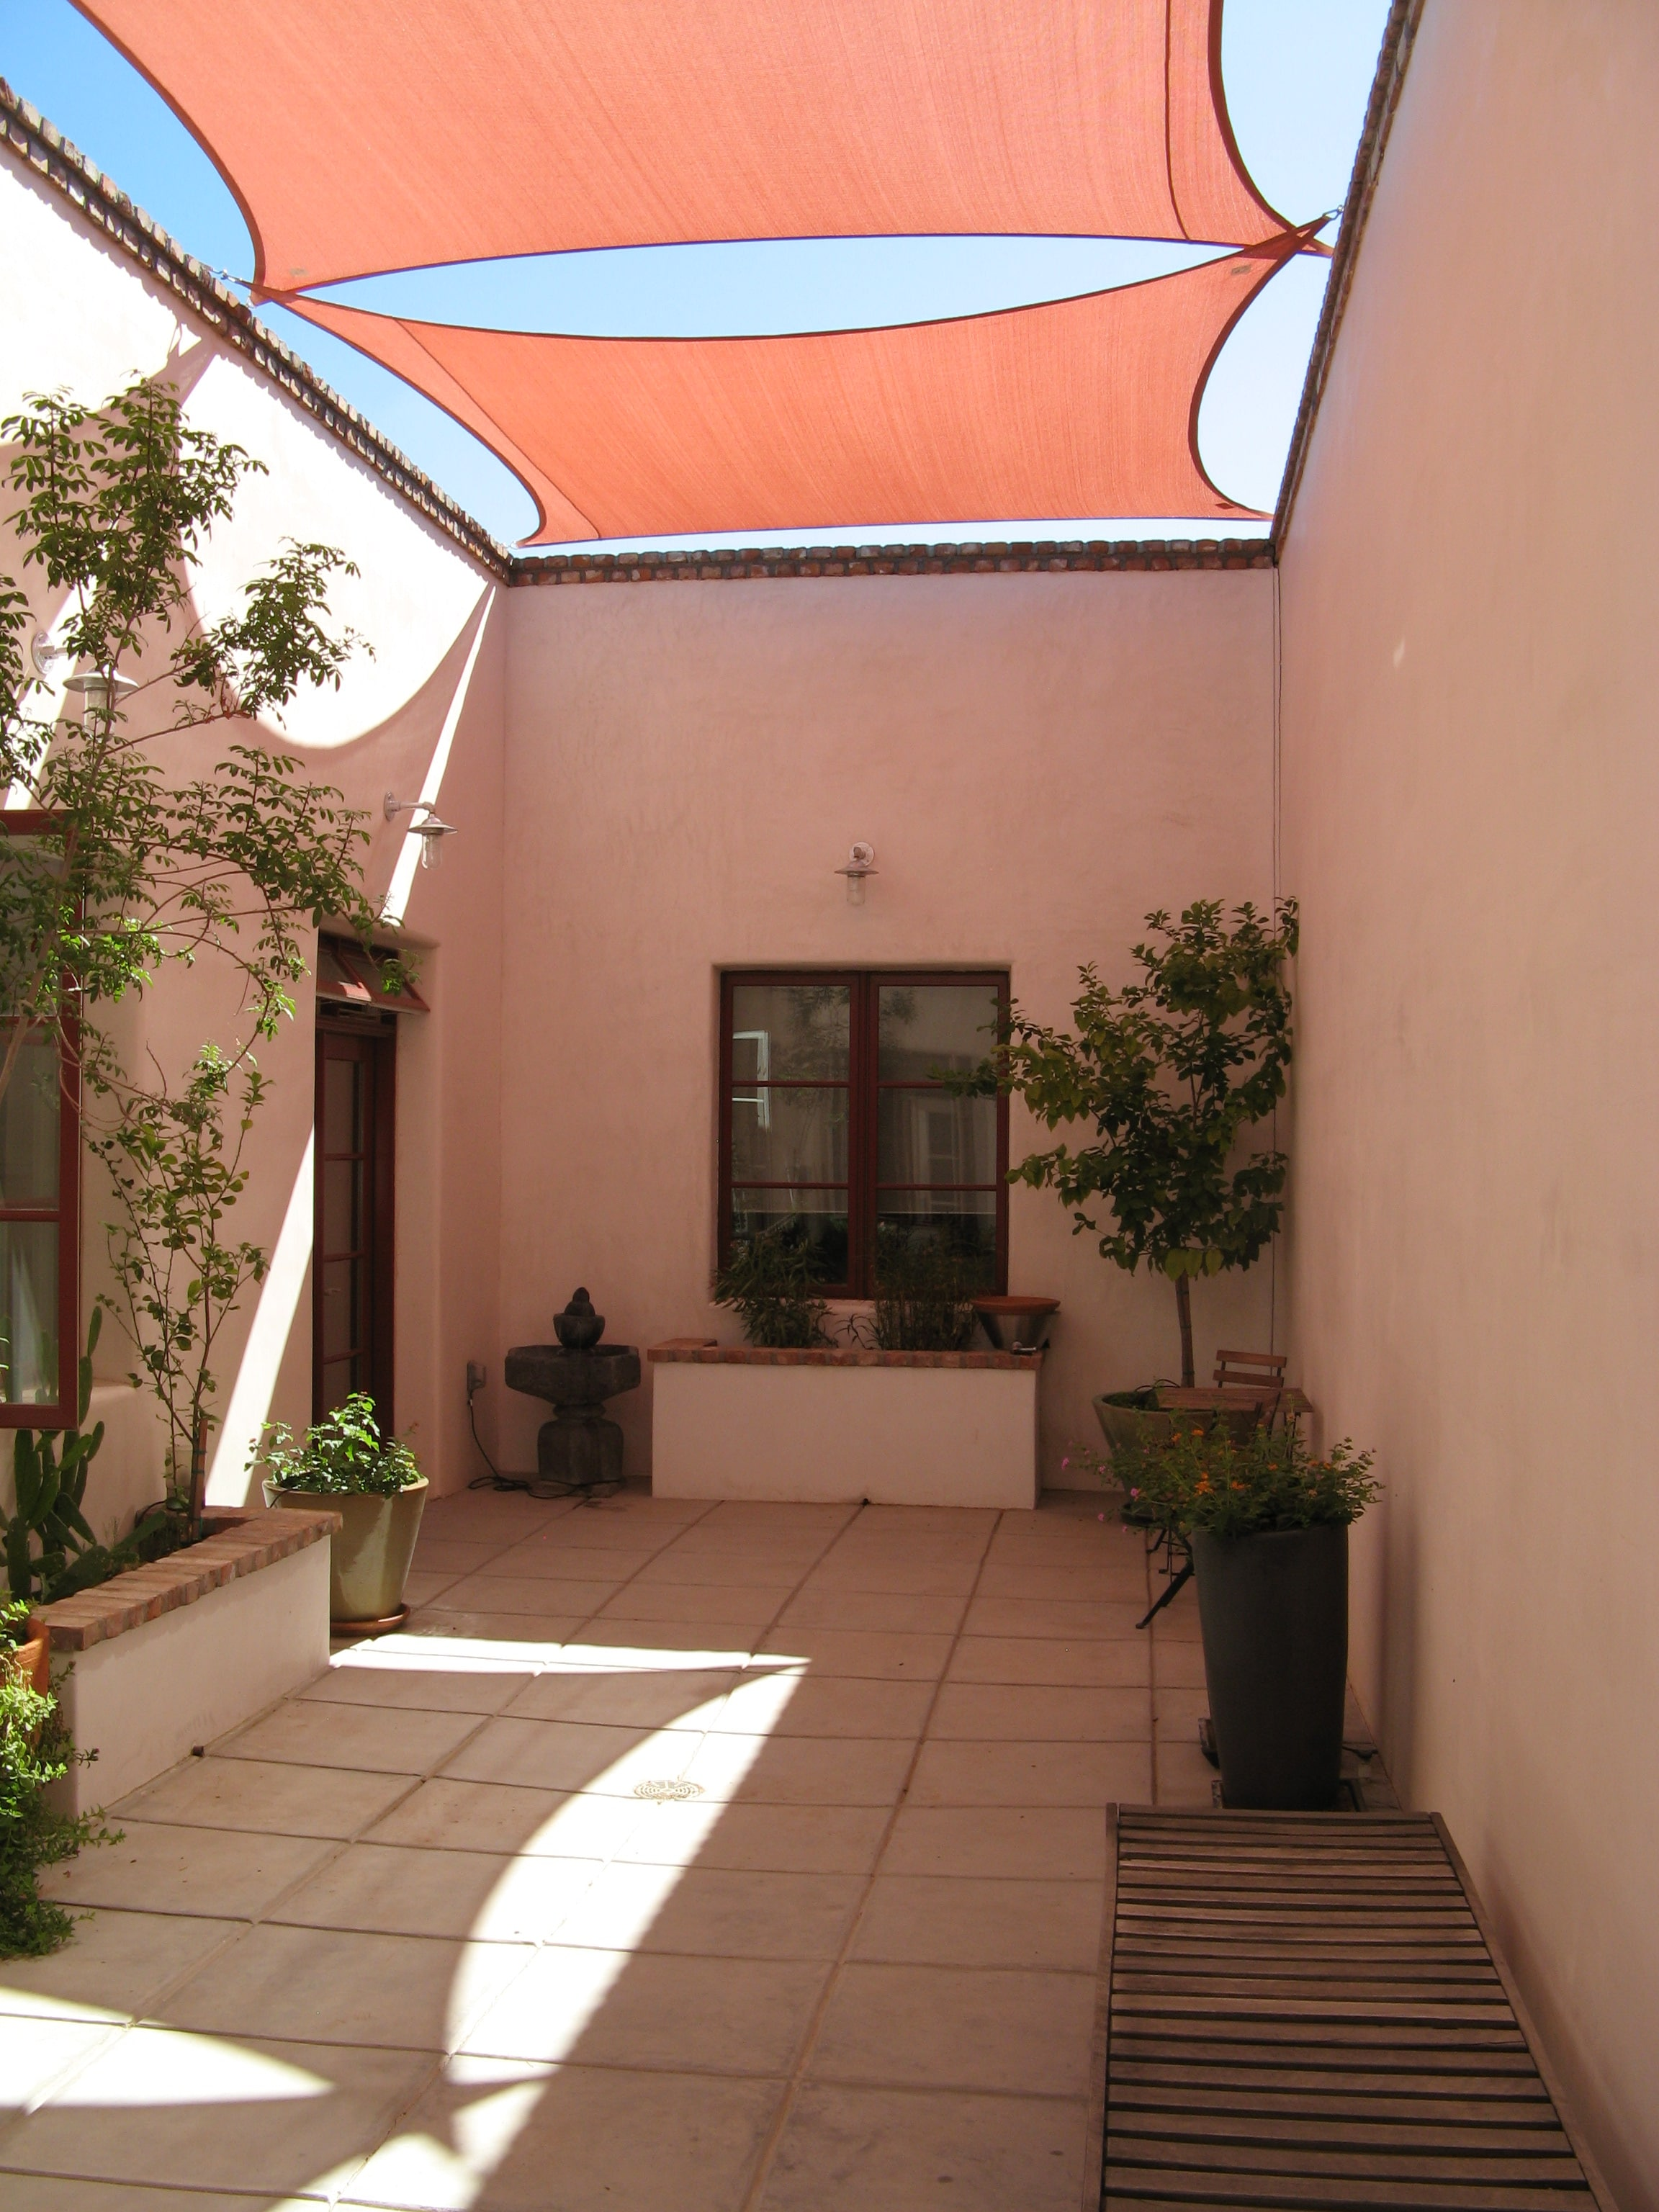 Courtyard with a fabric shade structure, just west of downtown